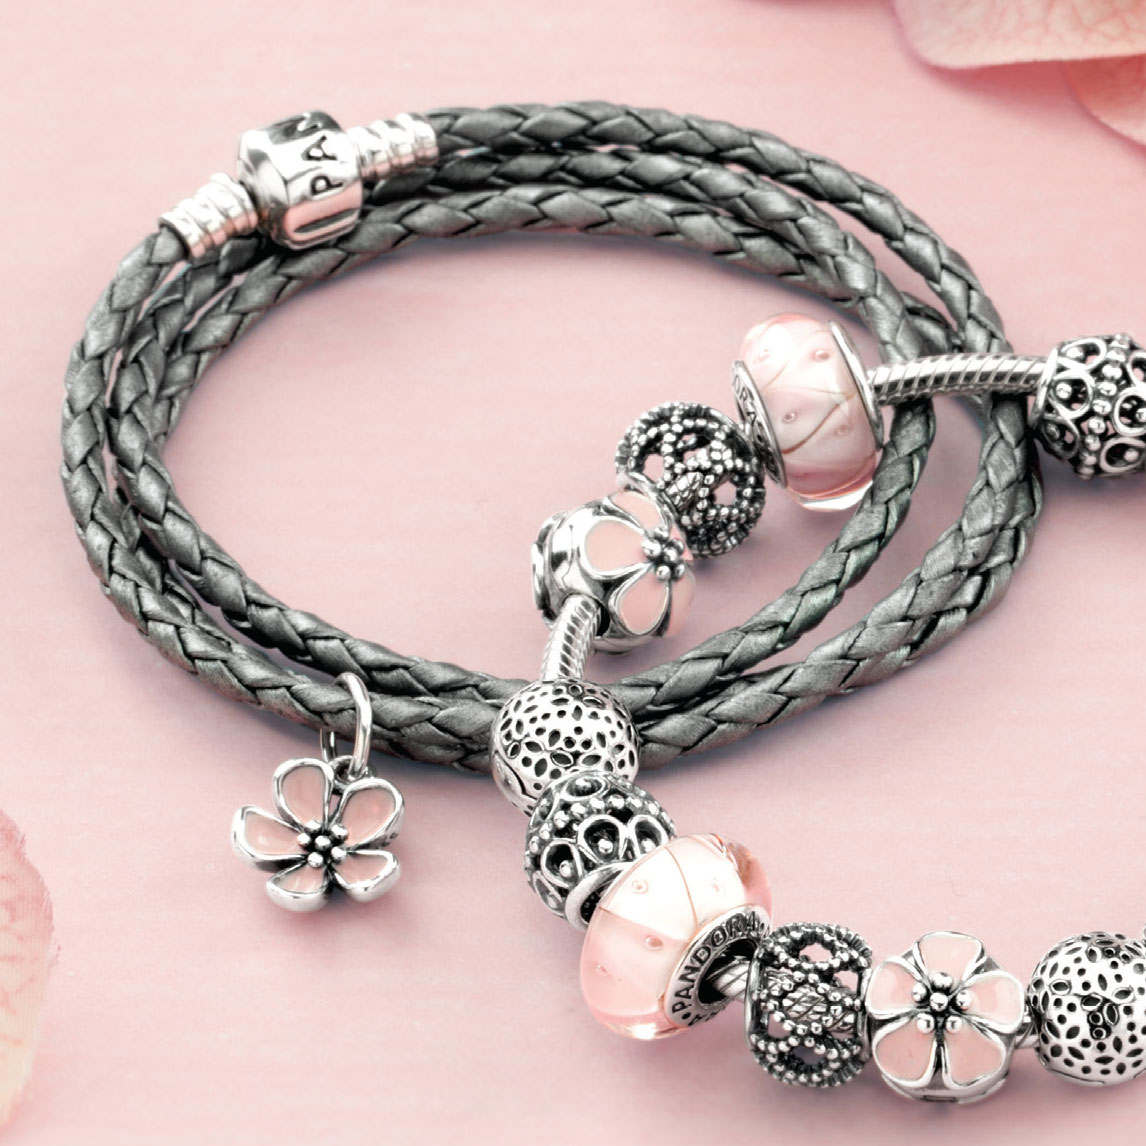 Pandora Cherry Blossom With Pink Enamel Stories Pendant Bracelet